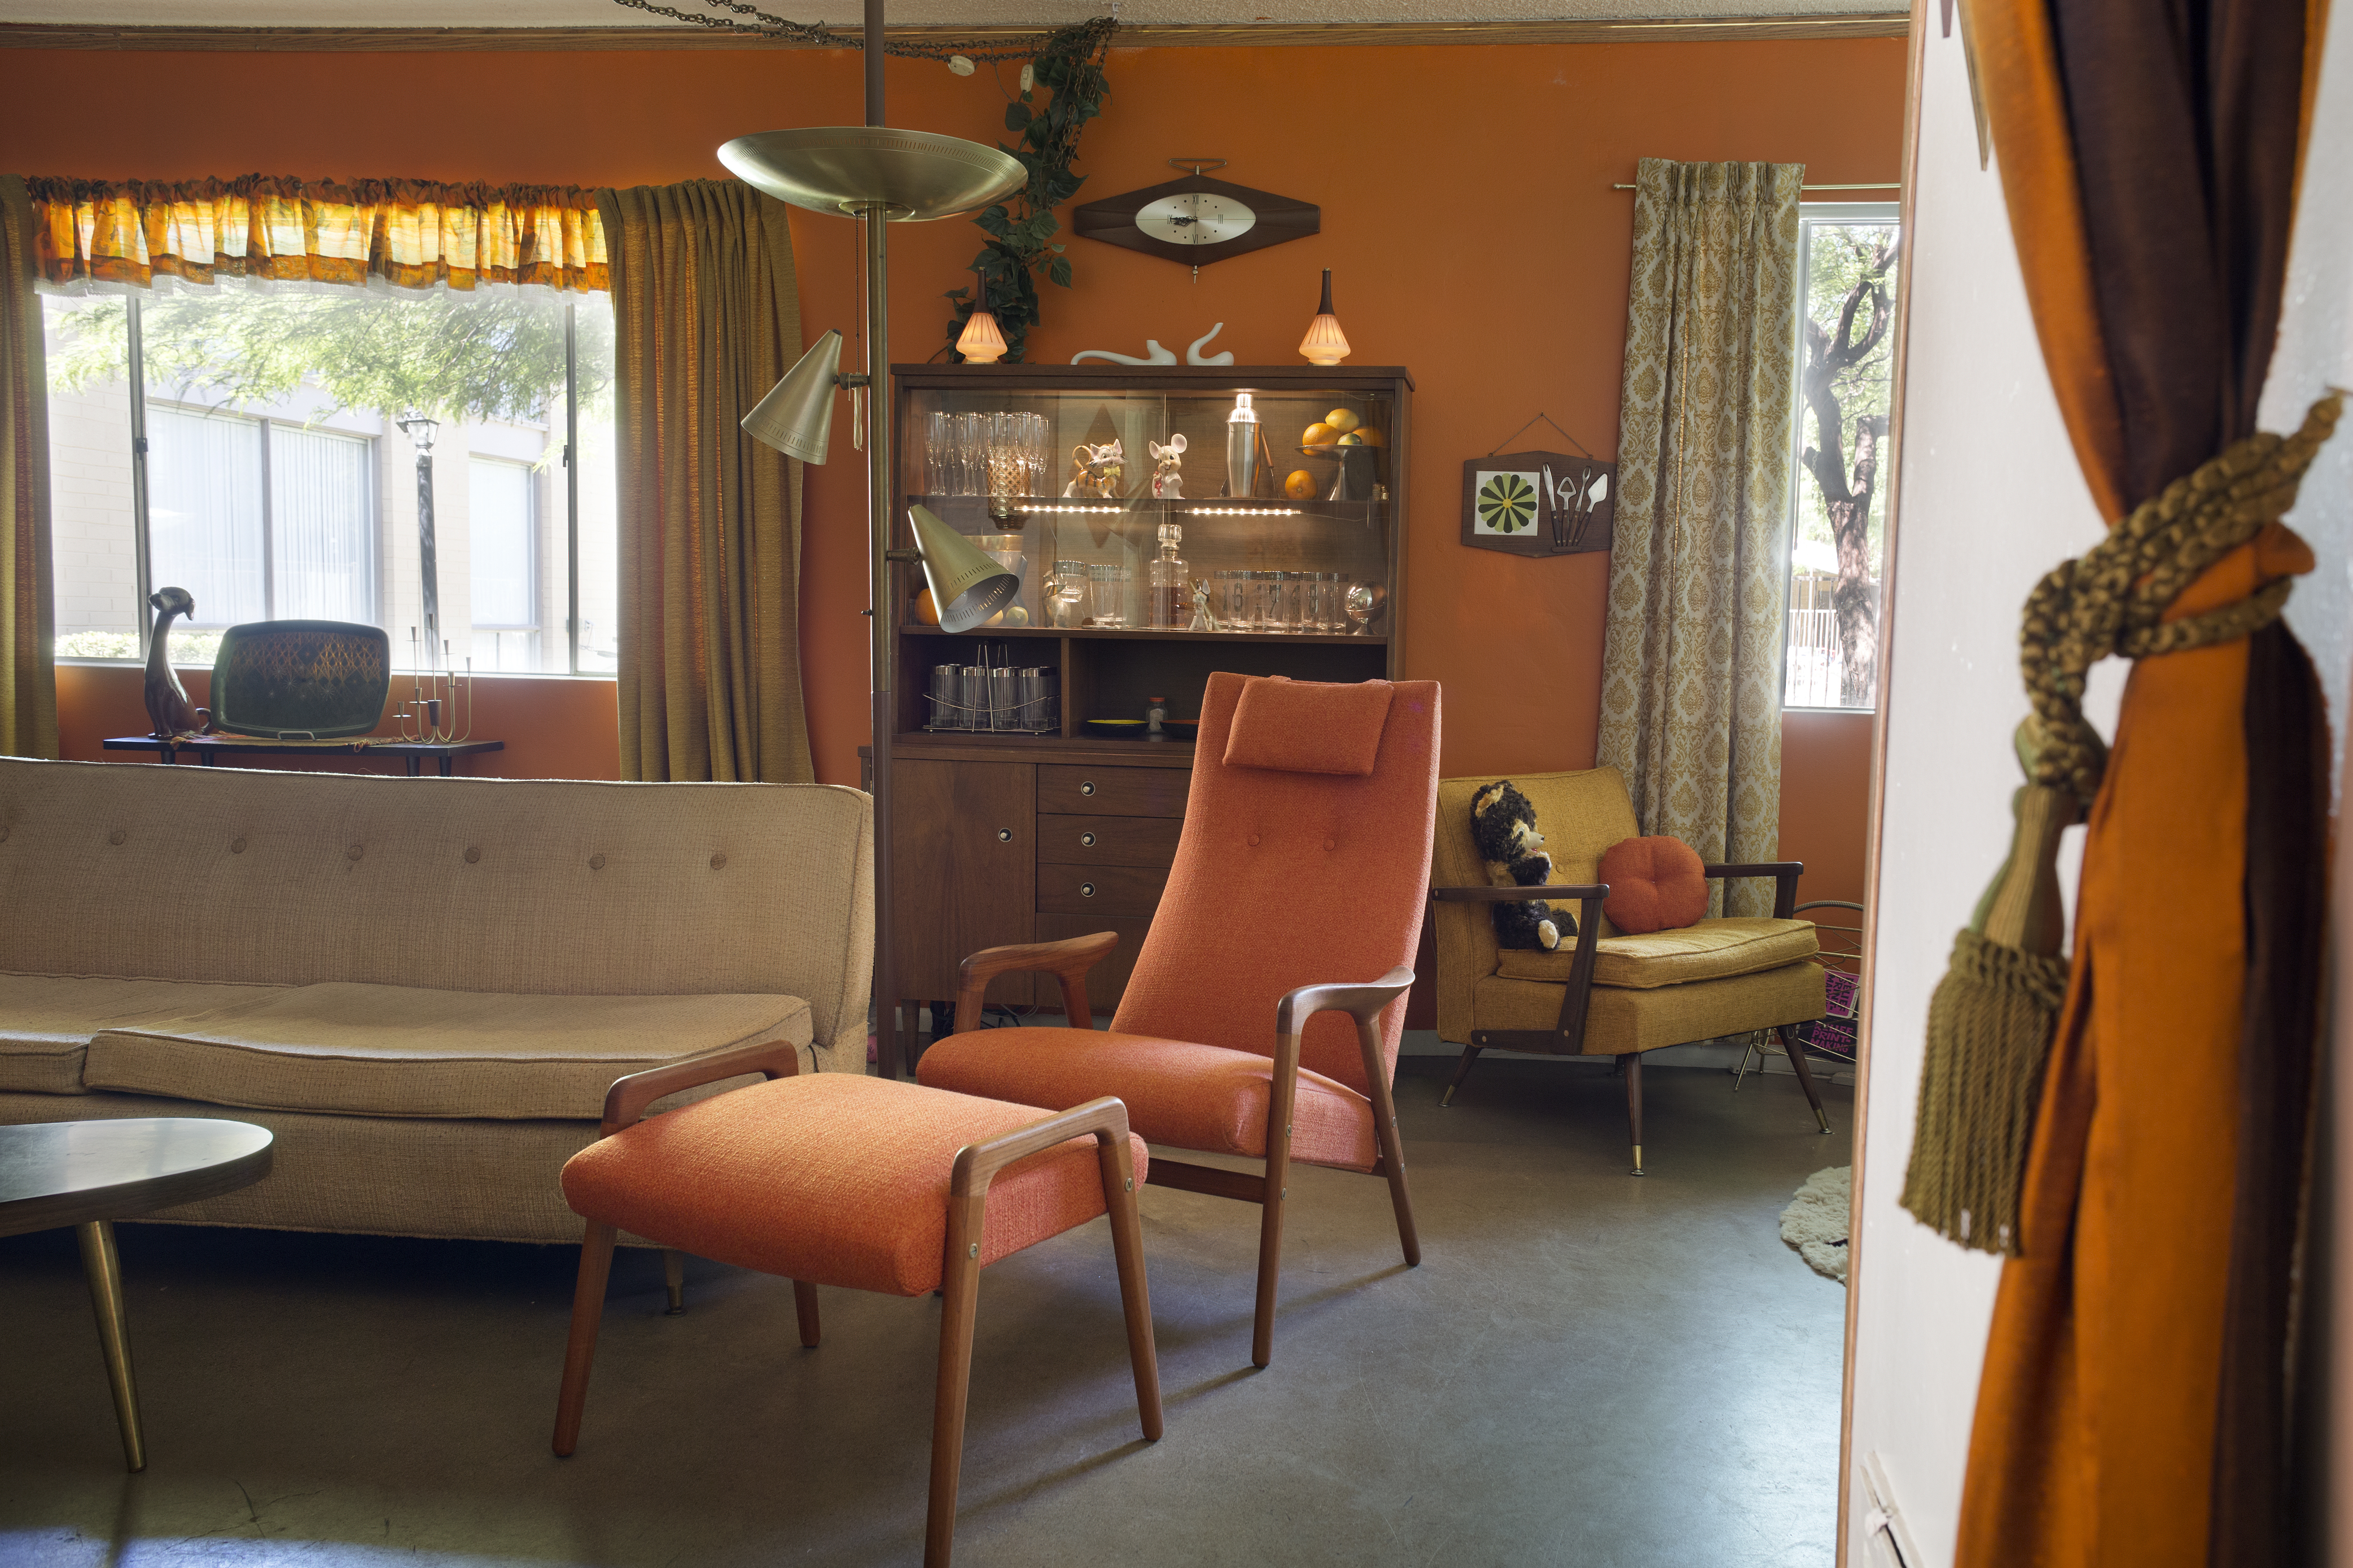 mcdermotts careful hewing to the decorating style of the 1960s makes for an authentic feeling time capsule home i got tired of seeing midcentury homes